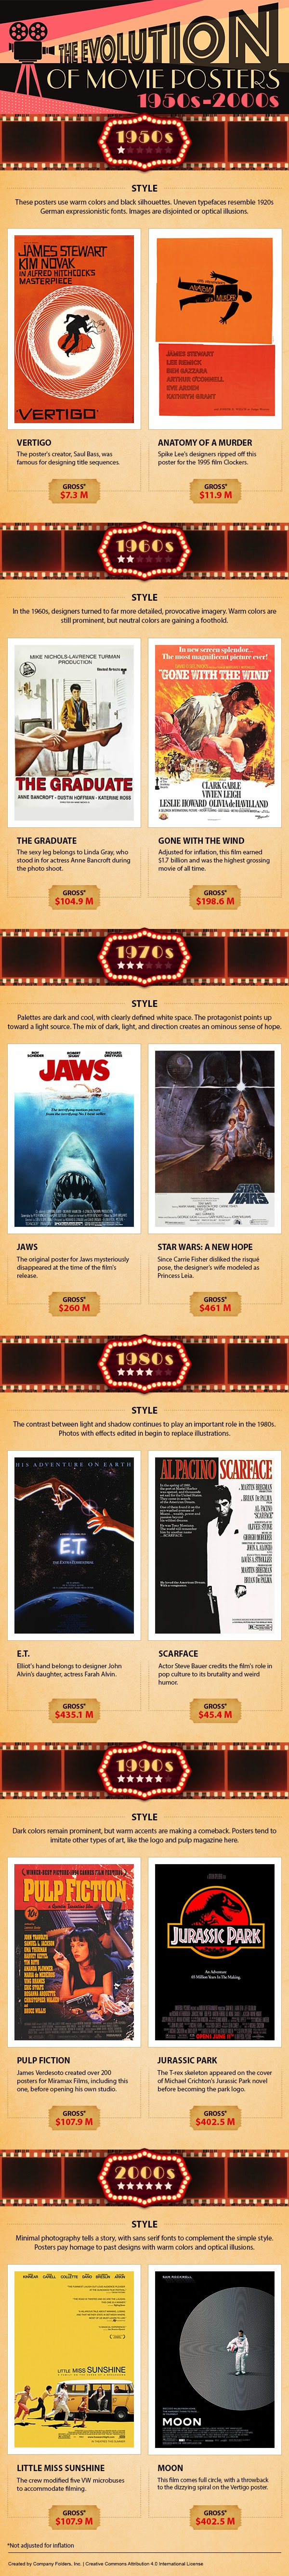 The Progression of Movie Posters from the 1950s-2000s